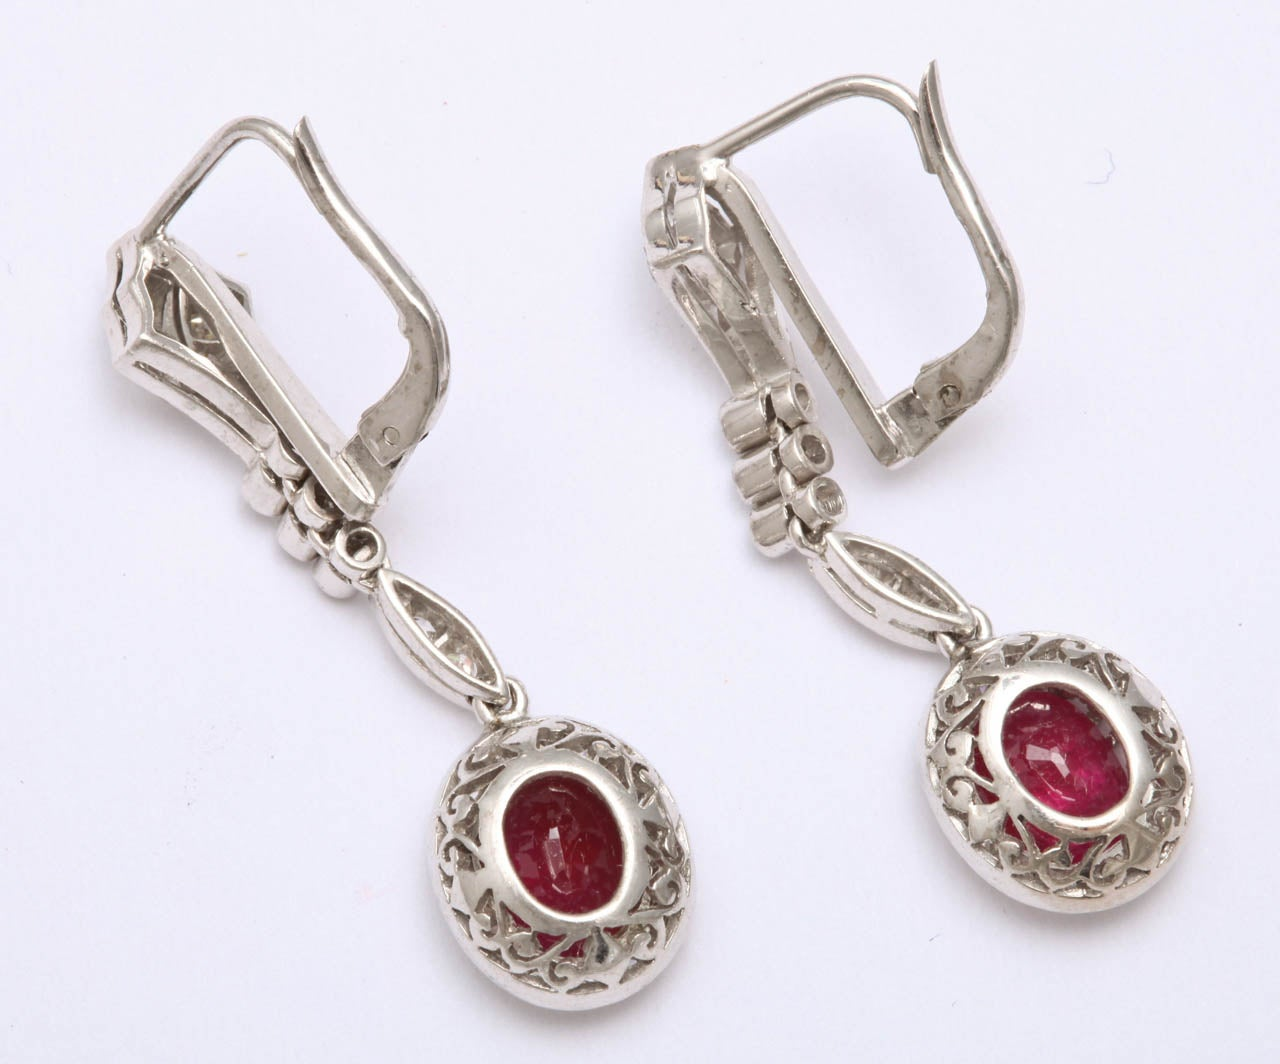 18kt  crown  setting ruby drop earrings, embellished with numerous old mine cut diamonds weighing approximately 1.50 carats and ruby weighing .50 carat each.